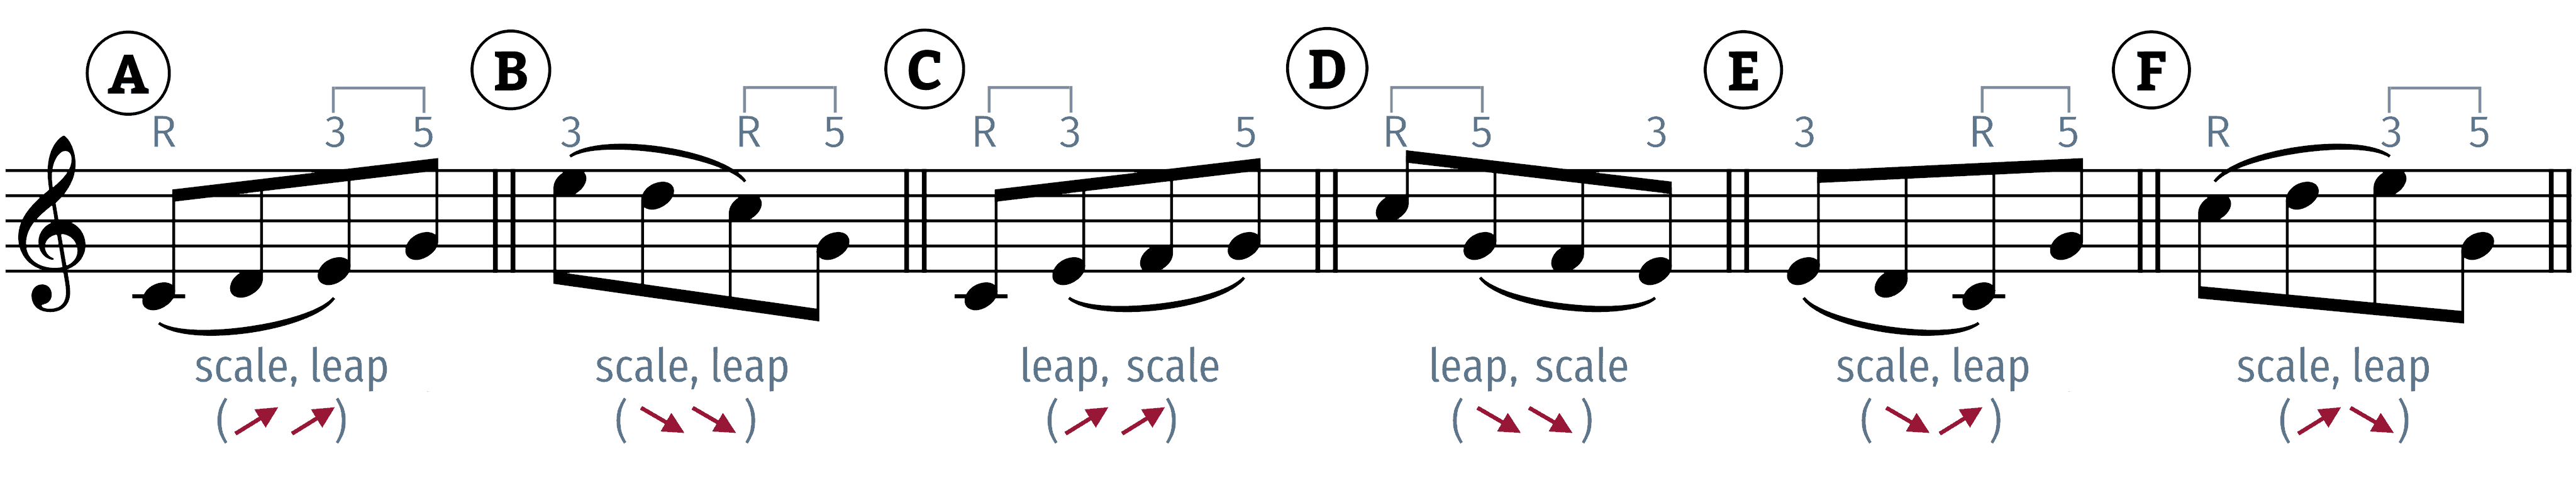 leaping scale options